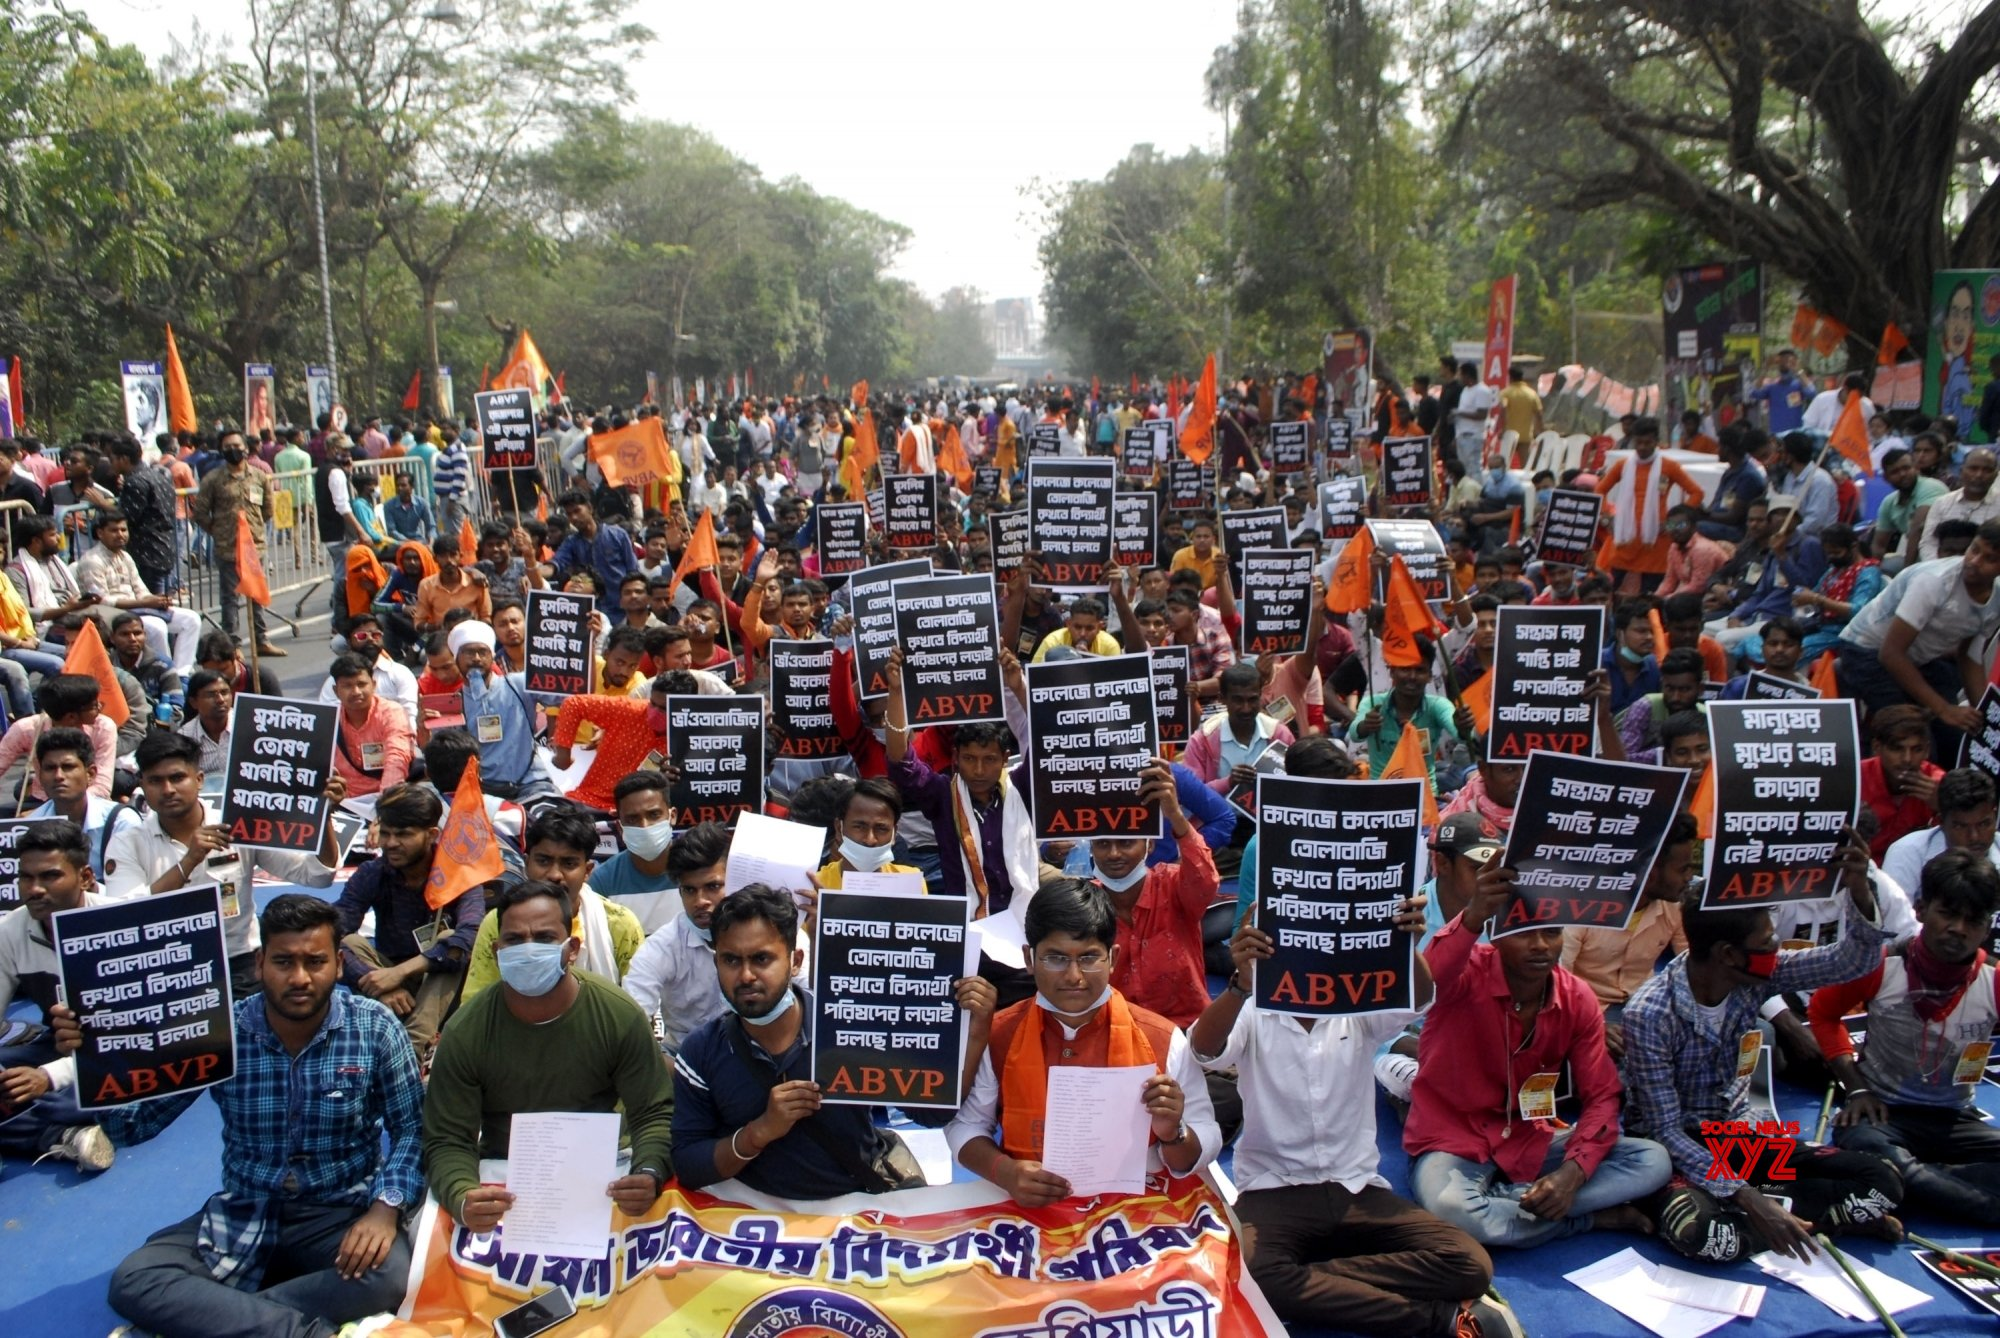 Kolkata: ABVP activists took part in a protest against the State Government in Kolkata on Monday 22nd February 2021 #Gallery